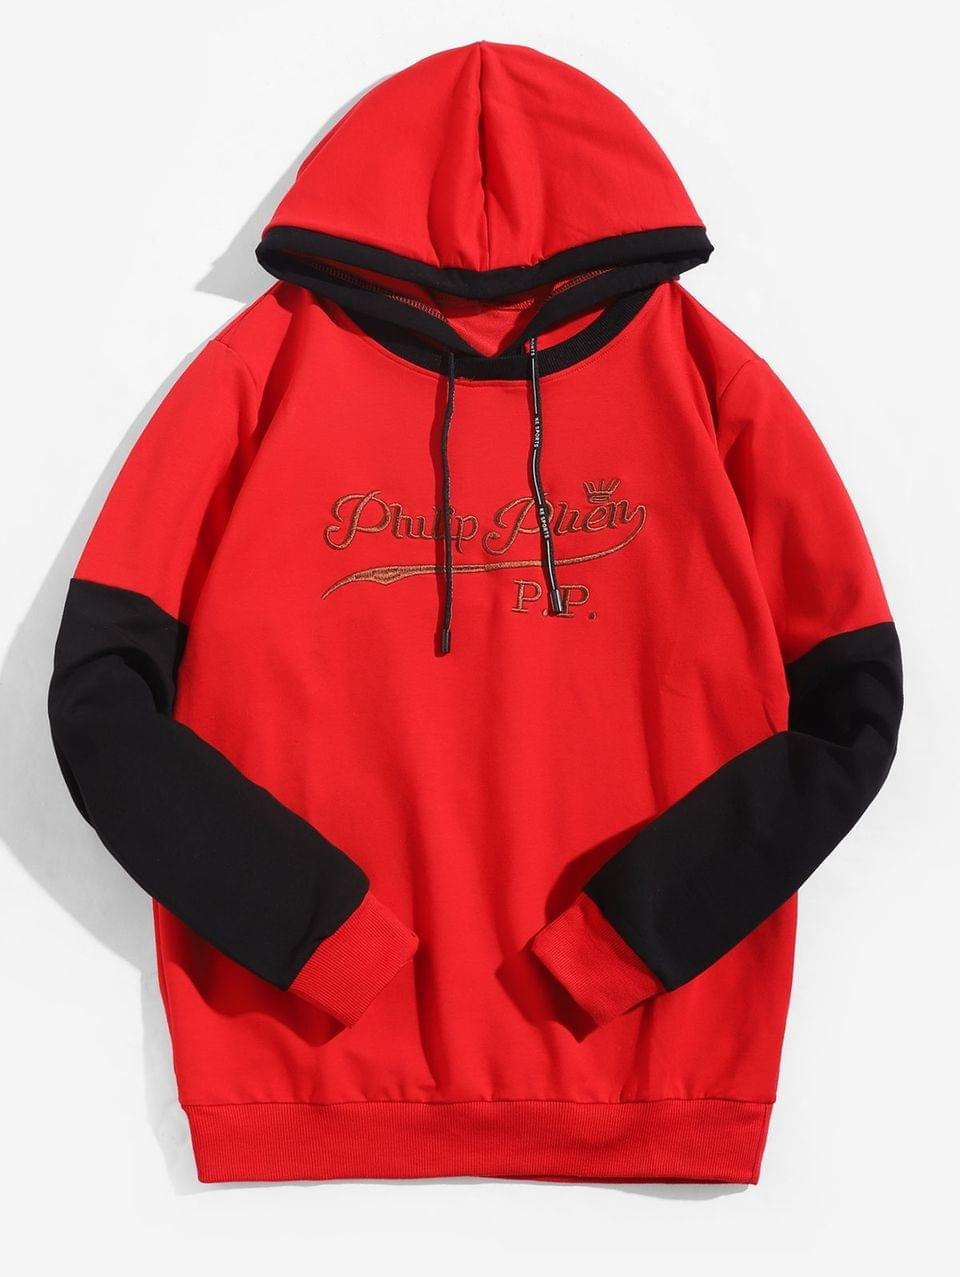 Men's Embroidery Letter Colorblocking Panel Hoodie - Red M